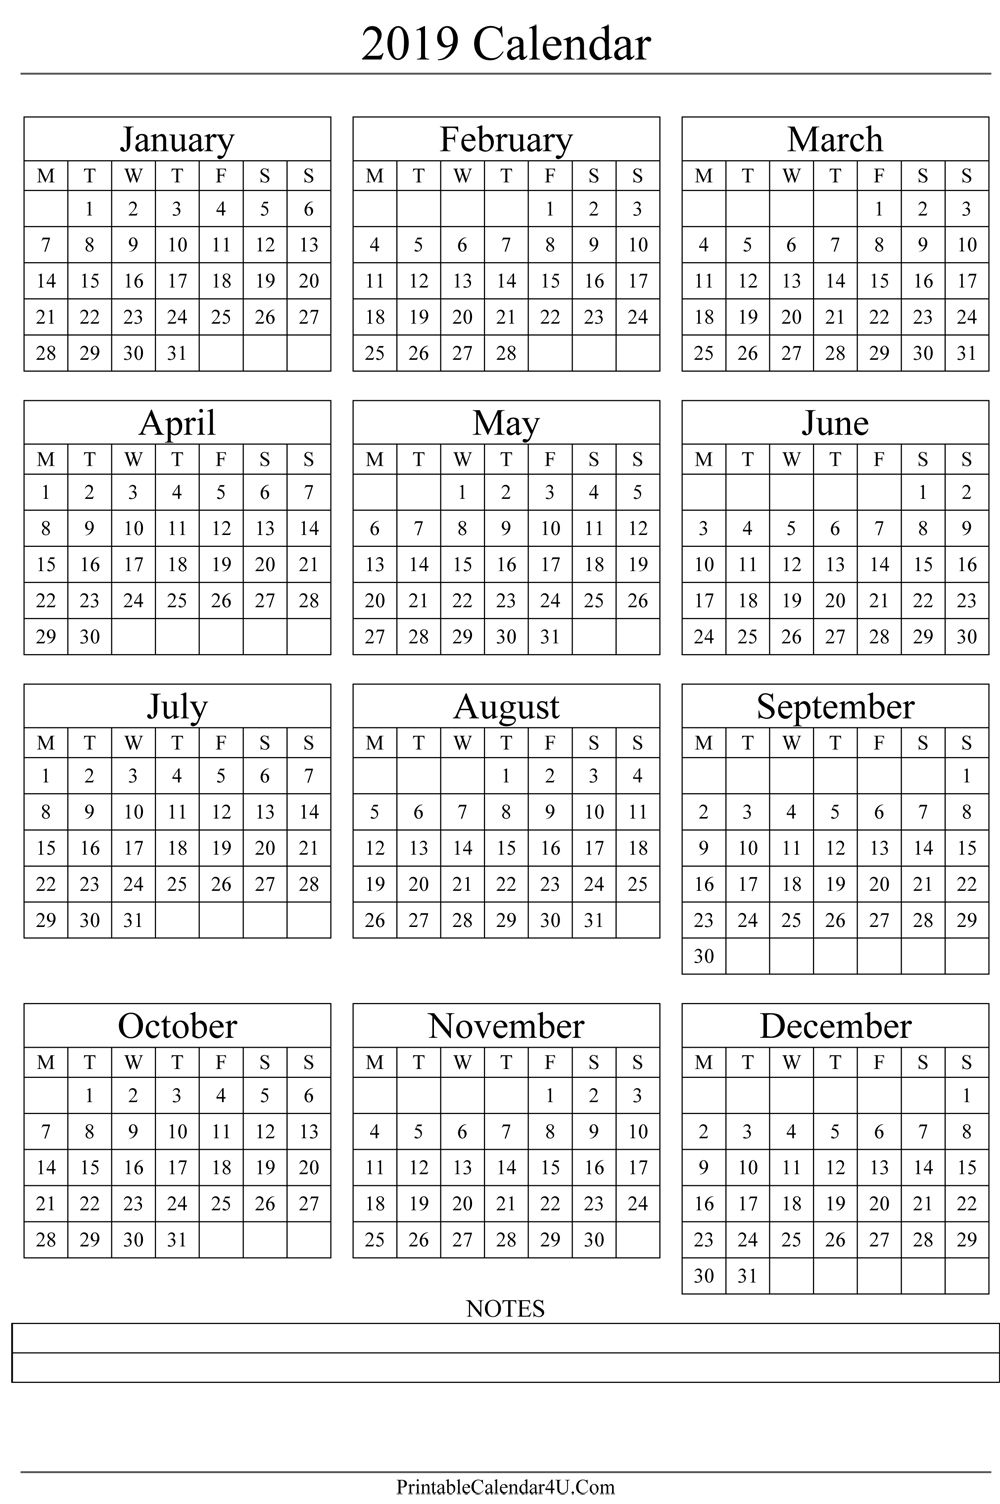 Free Printable Yearly Calendar 2019 annual calendar 2019 portrait printable calendar 2017 | Gift ideas